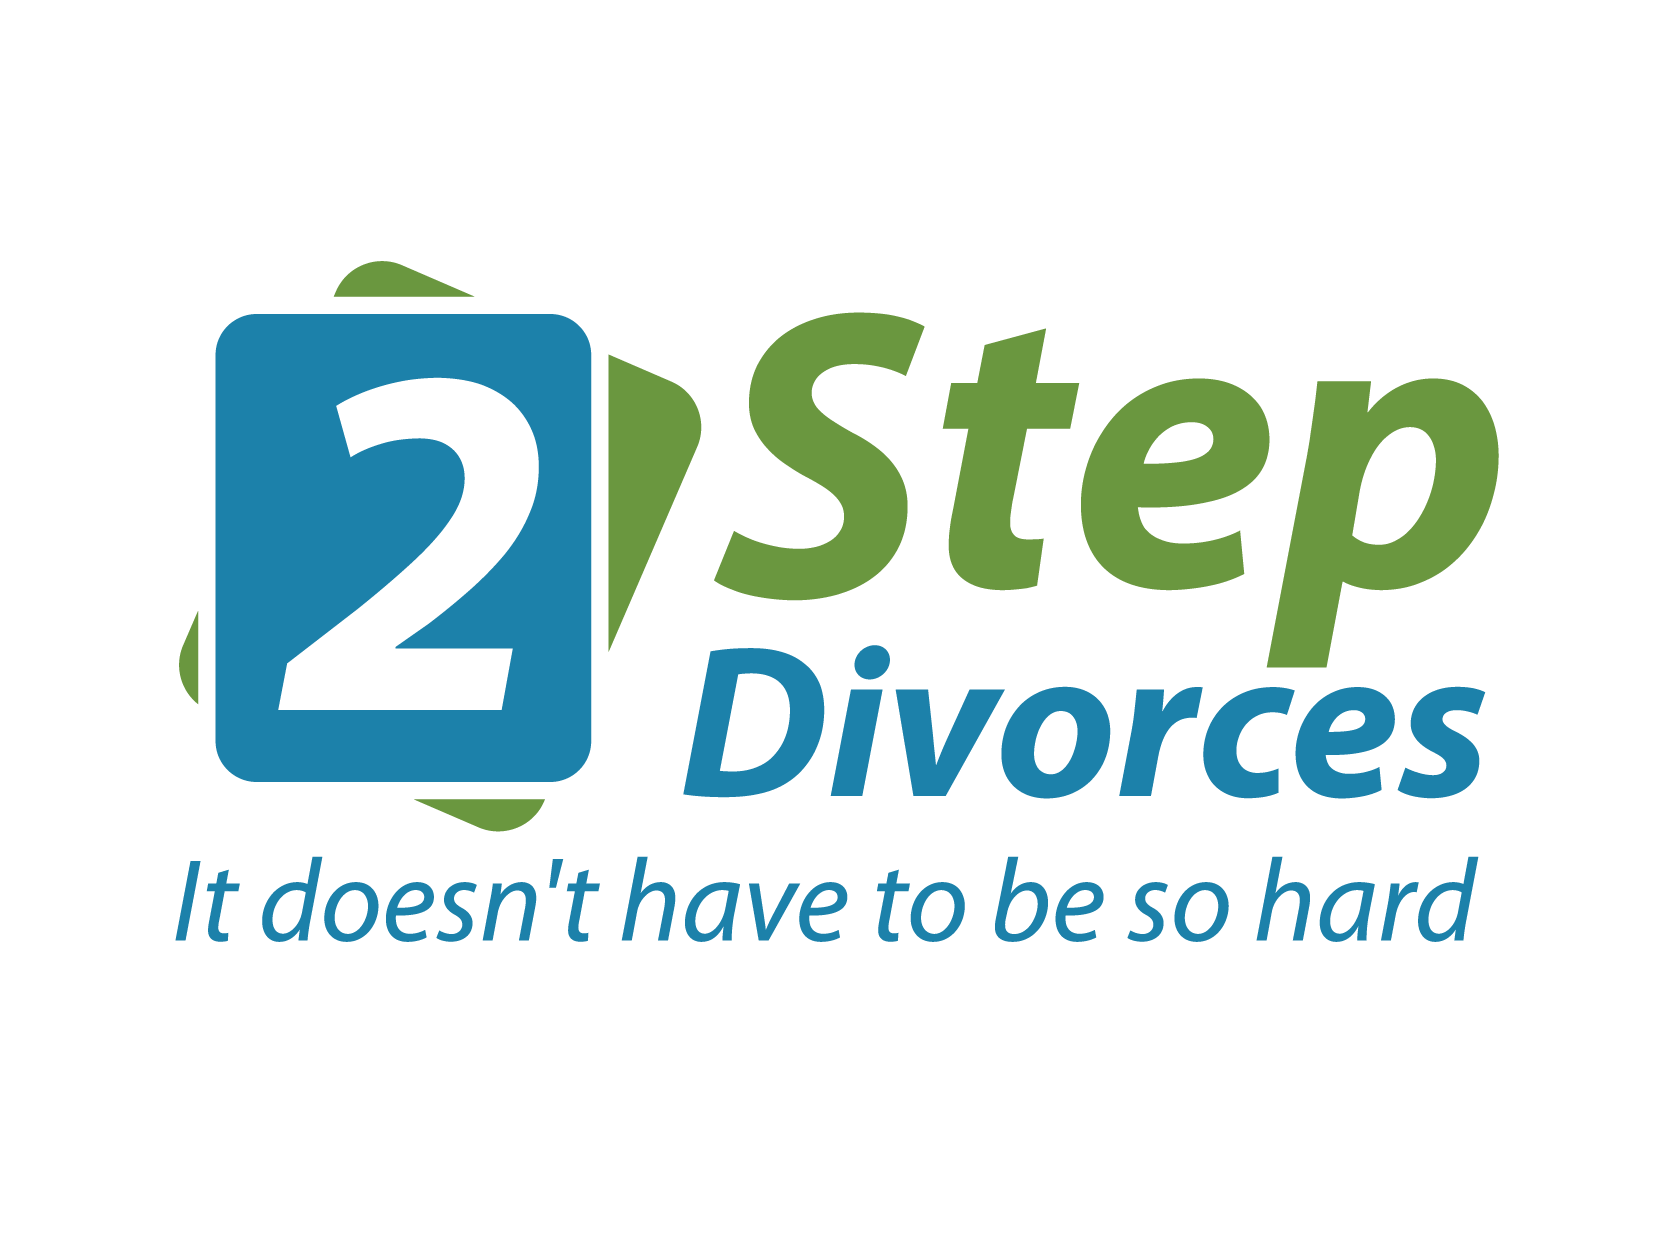 2 Step Divorces